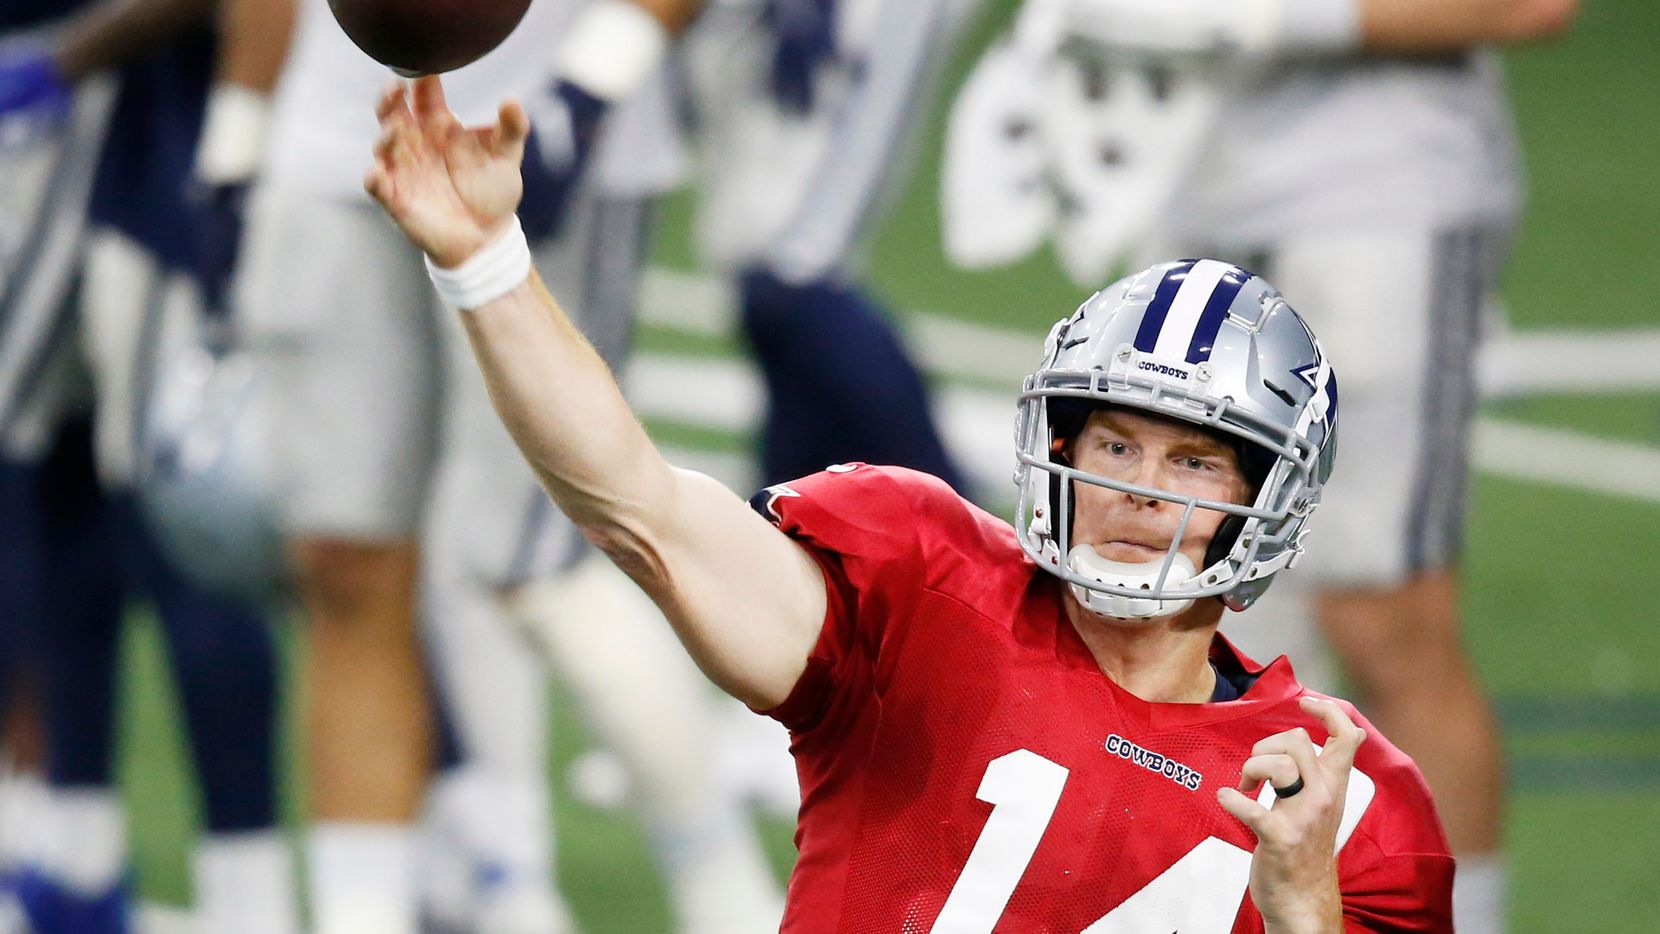 Dallas Cowboys quarterback Andy Dalton (14) attempts a pass in practice during training camp at the Dallas Cowboys headquarters at The Star in Frisco, Texas on Tuesday, August 25, 2020. (Vernon Bryant/The Dallas Morning News)